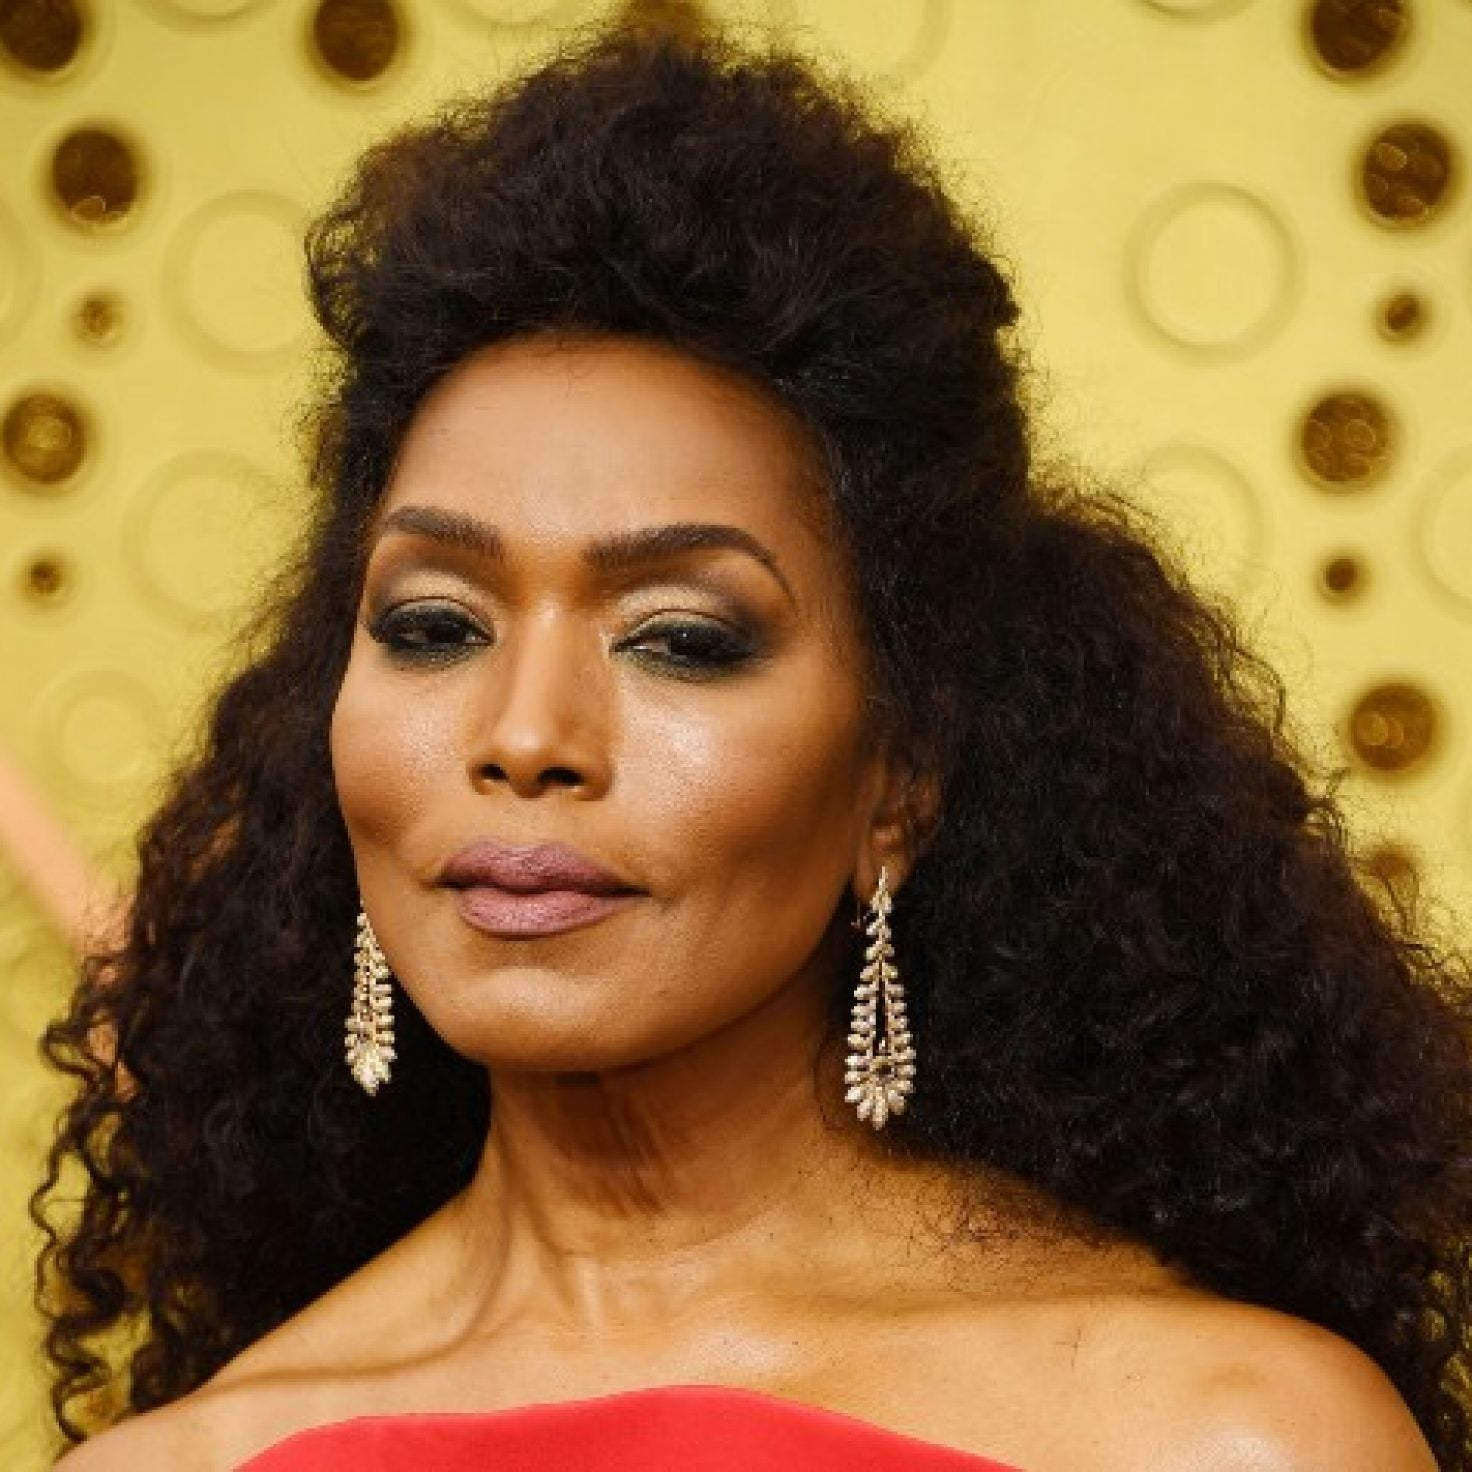 Angela Bassett Influenced This Luxury Brand To Create A Line For Darker Skin Tones